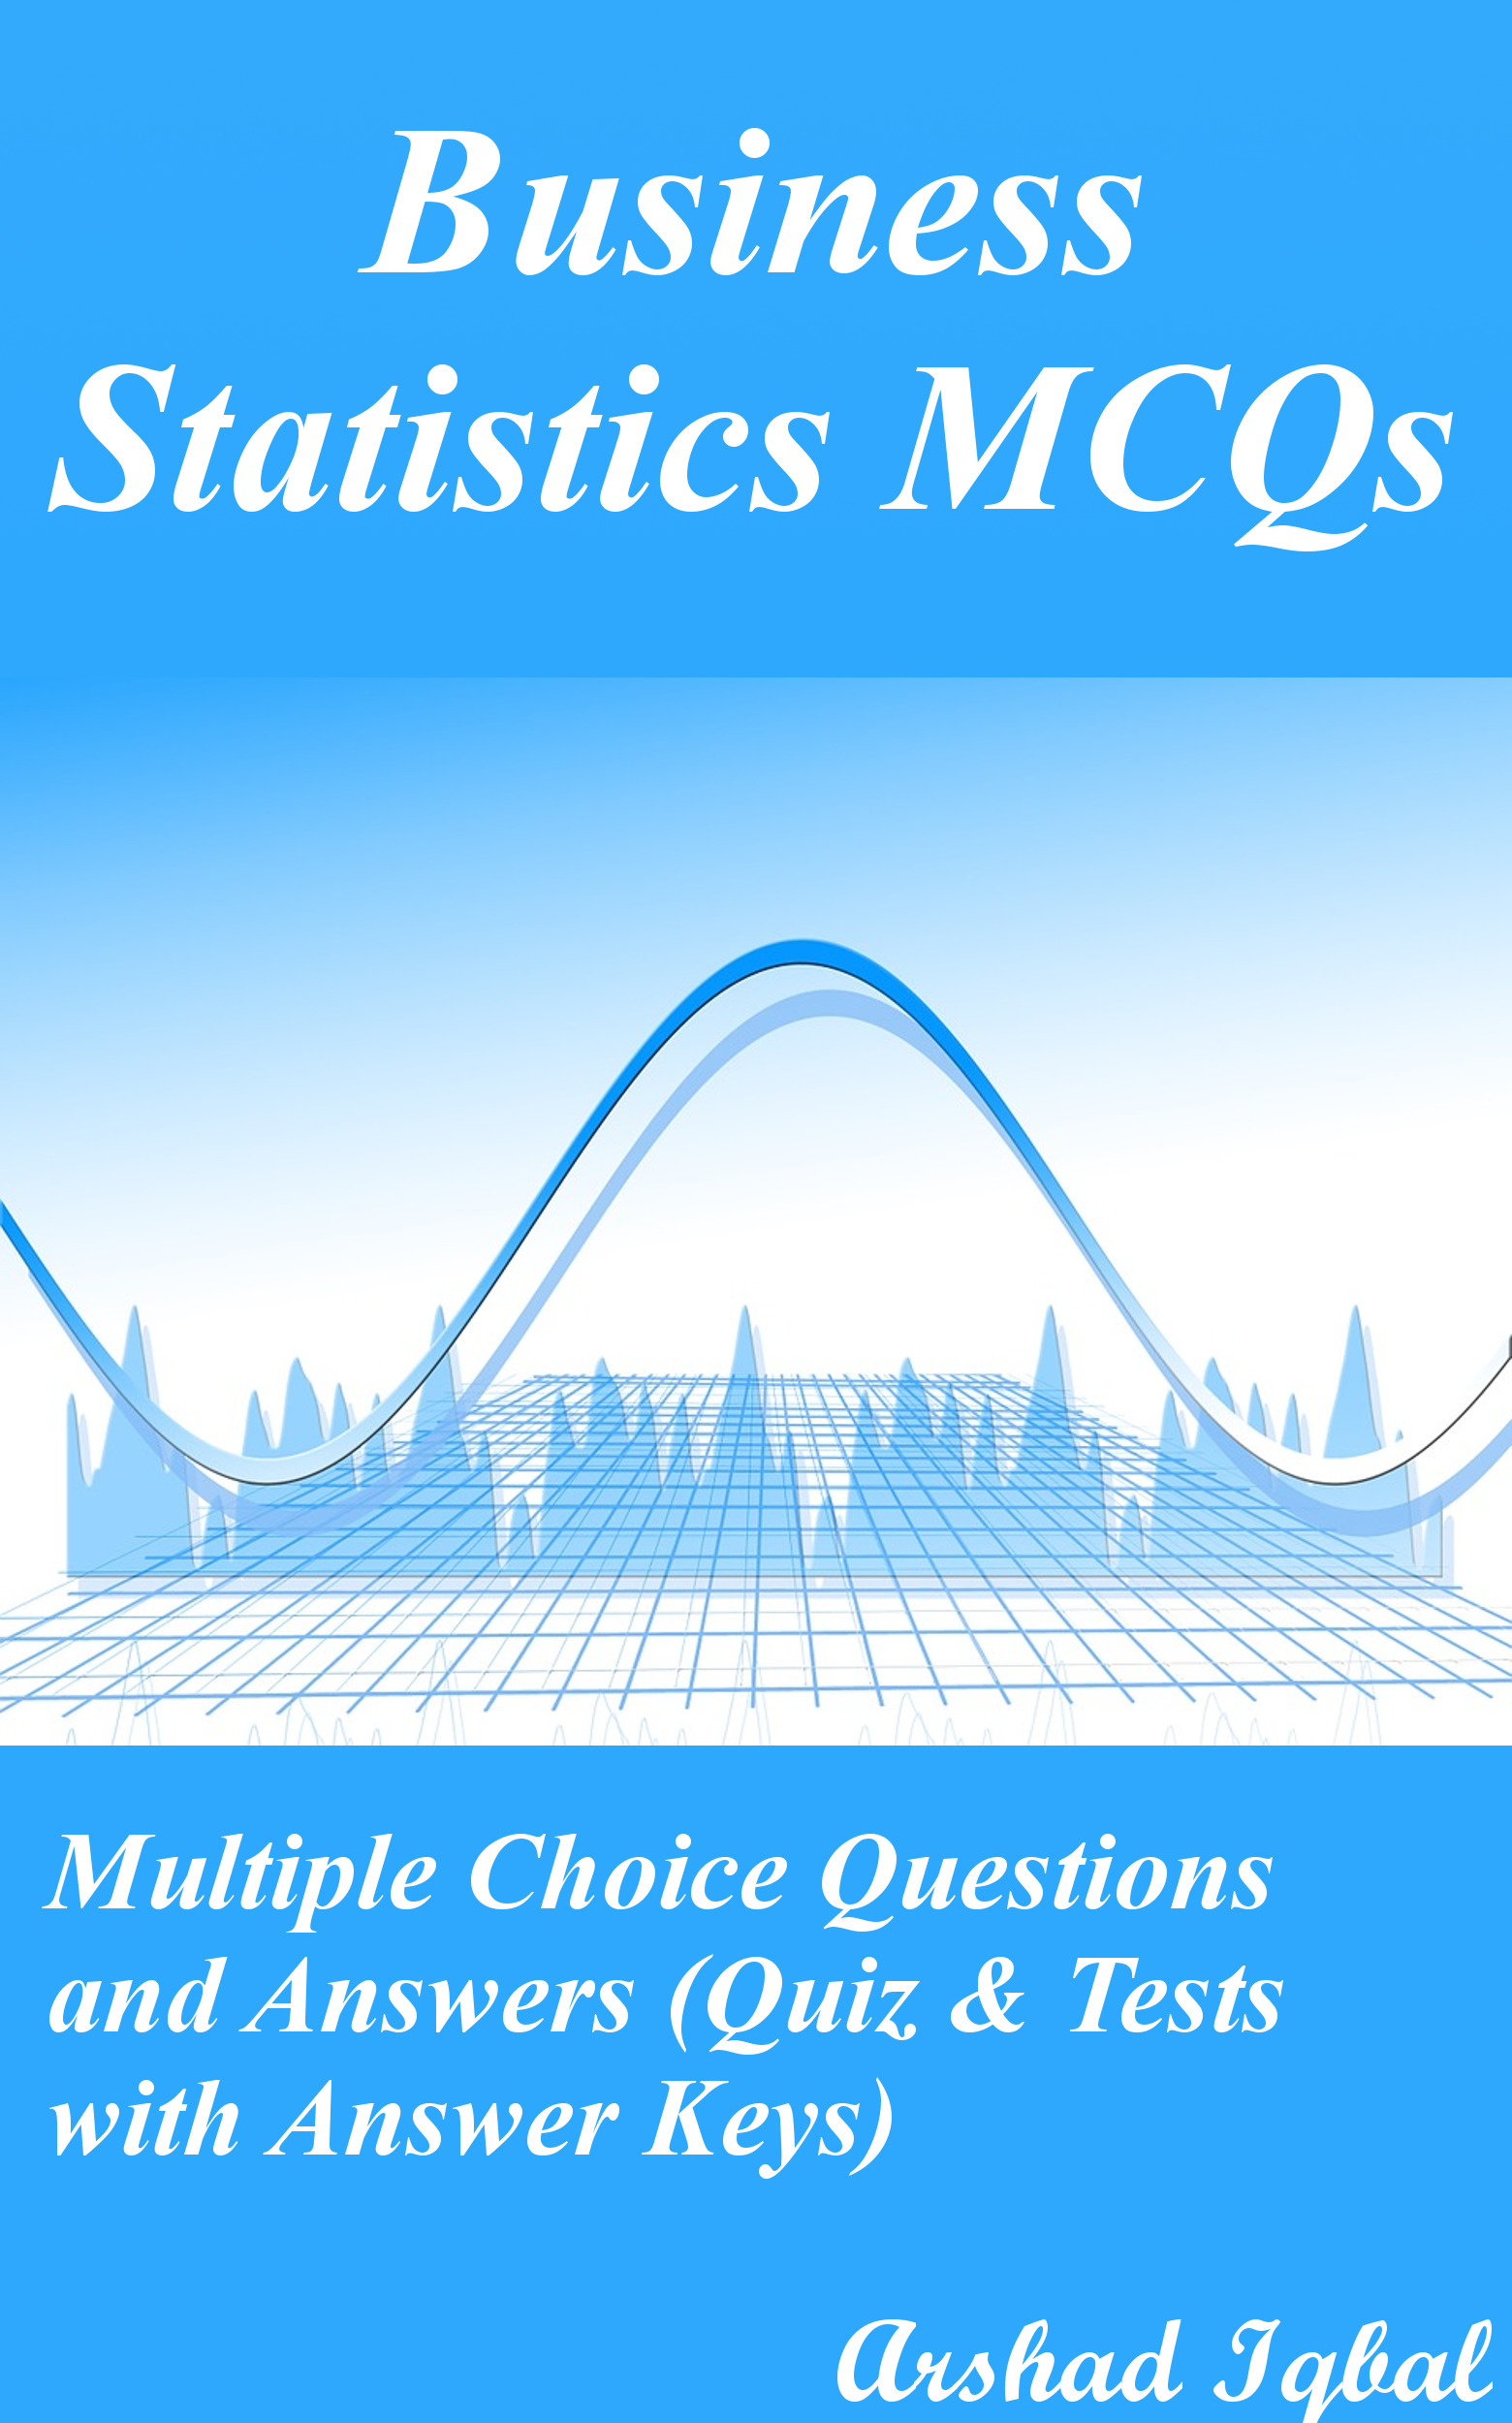 Business Statistics MCQs: Multiple Choice Questions and Answers (Quiz & Tests with Answer Keys)